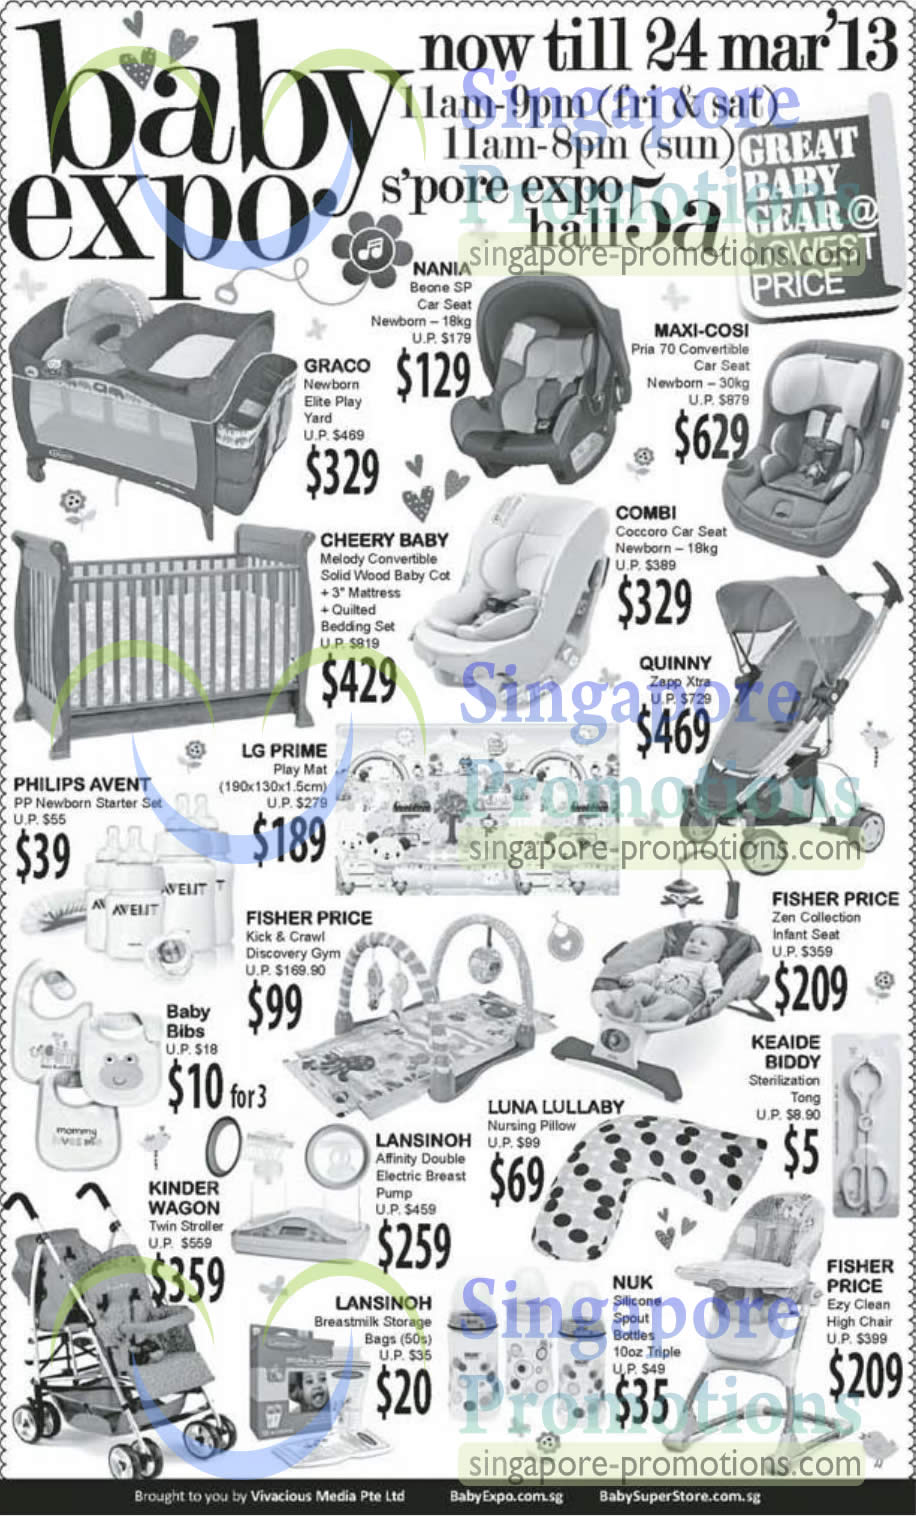 Nania Boone SP Car Seat, Maxi-Cosi Pria 70 Convertible Car Seat, Graco Newborn Elite Play Yard, Cheery Baby Melody Convertible Sdid Wood Baby Cot, COMBI Coccoro Car Seat, Quinny Zapp Xtra, FISHER PRICE Kick & Crawl Discovery Gym, Kinder Wagon Twin Stroller, Lansinoh Affinity Electric Breast Pump, FISHER PRICE Ezy Clean High Chair